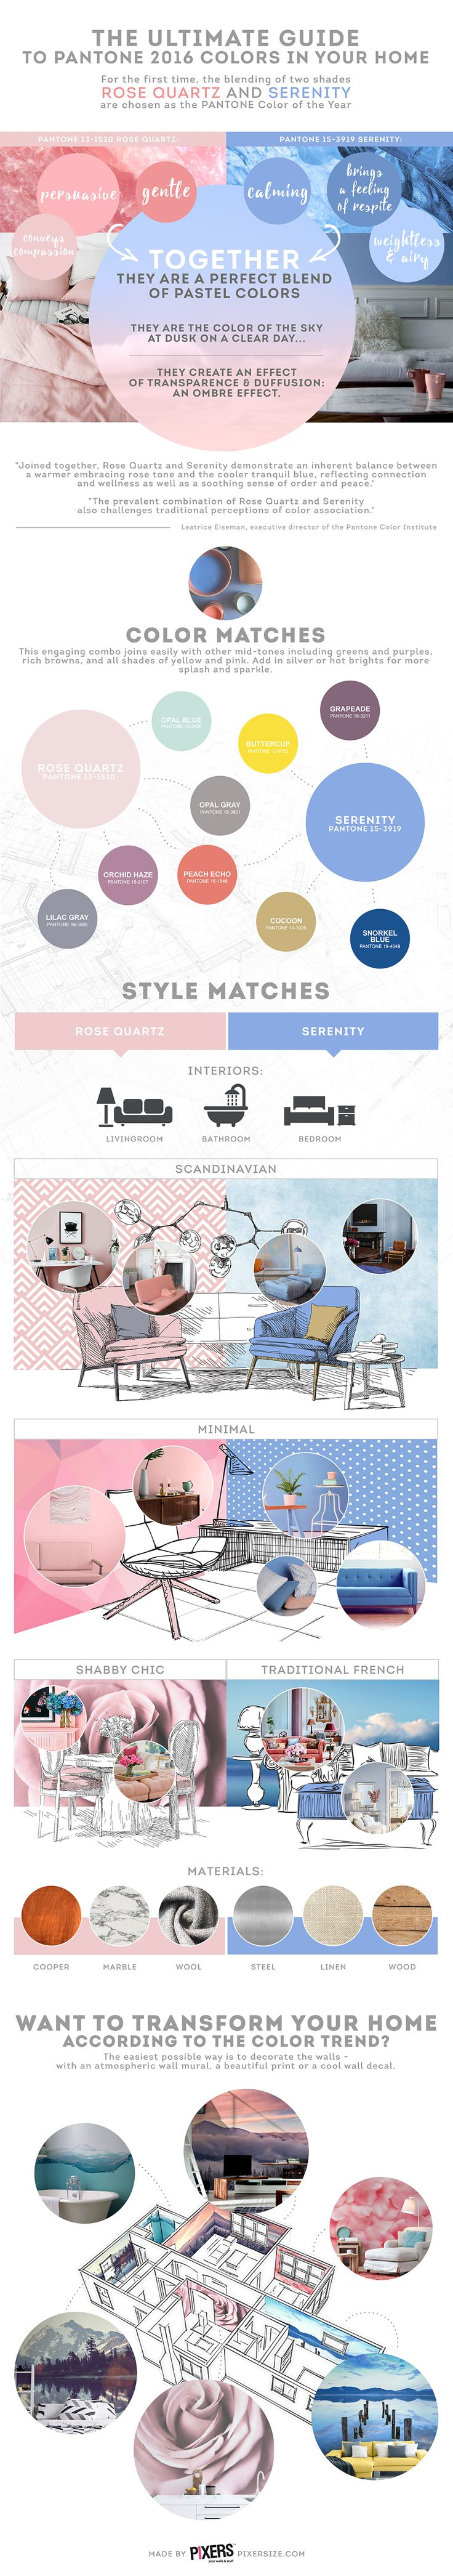 Infographic: The Ultimate Guide To Decorate Your Home With PANTONE's 2016 Colors - DesignTAXI.com